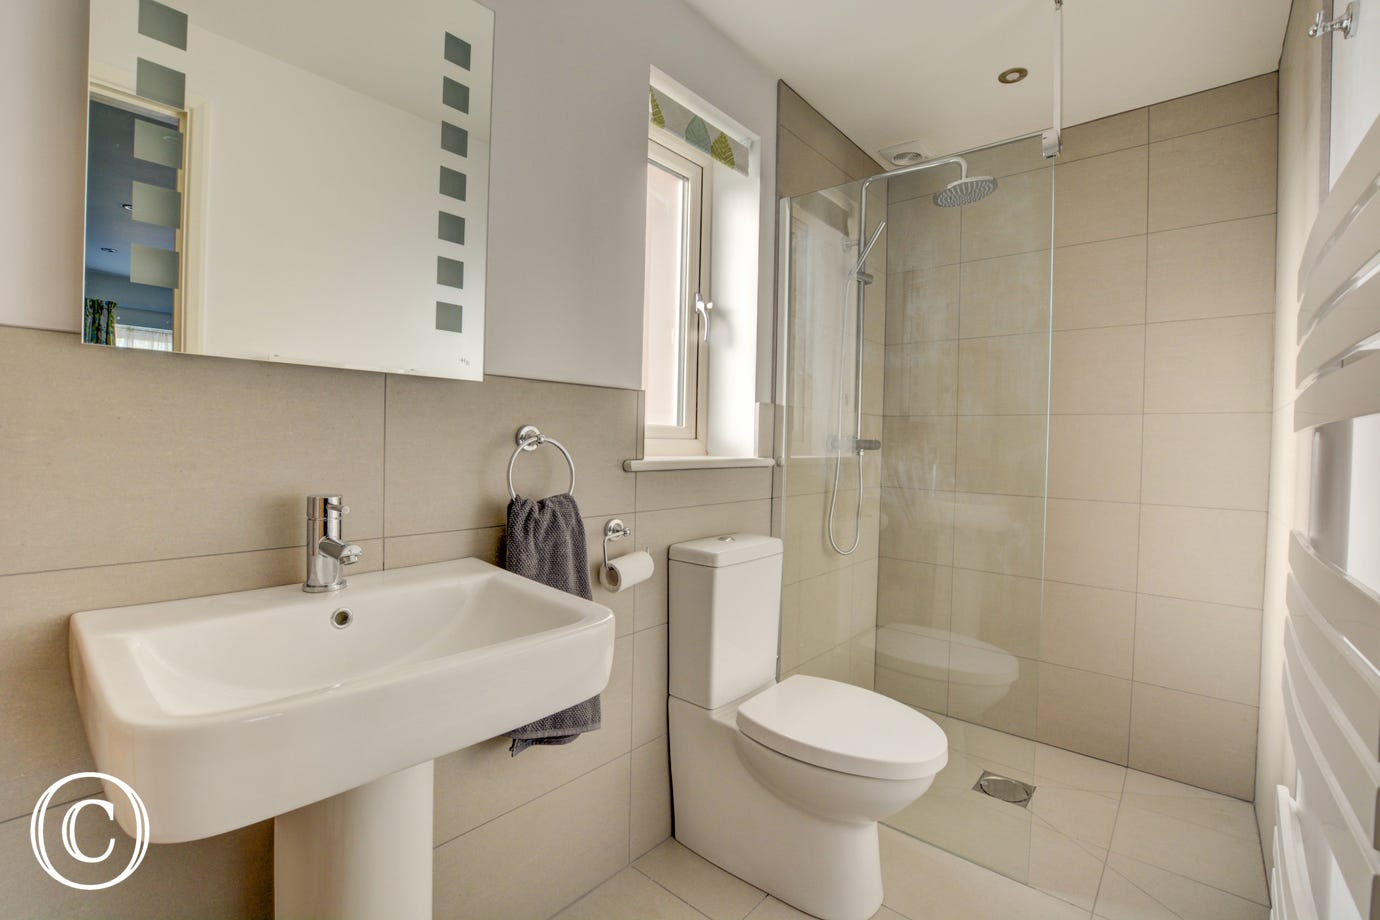 Bedroom 3 En-suite showing shower cubicle